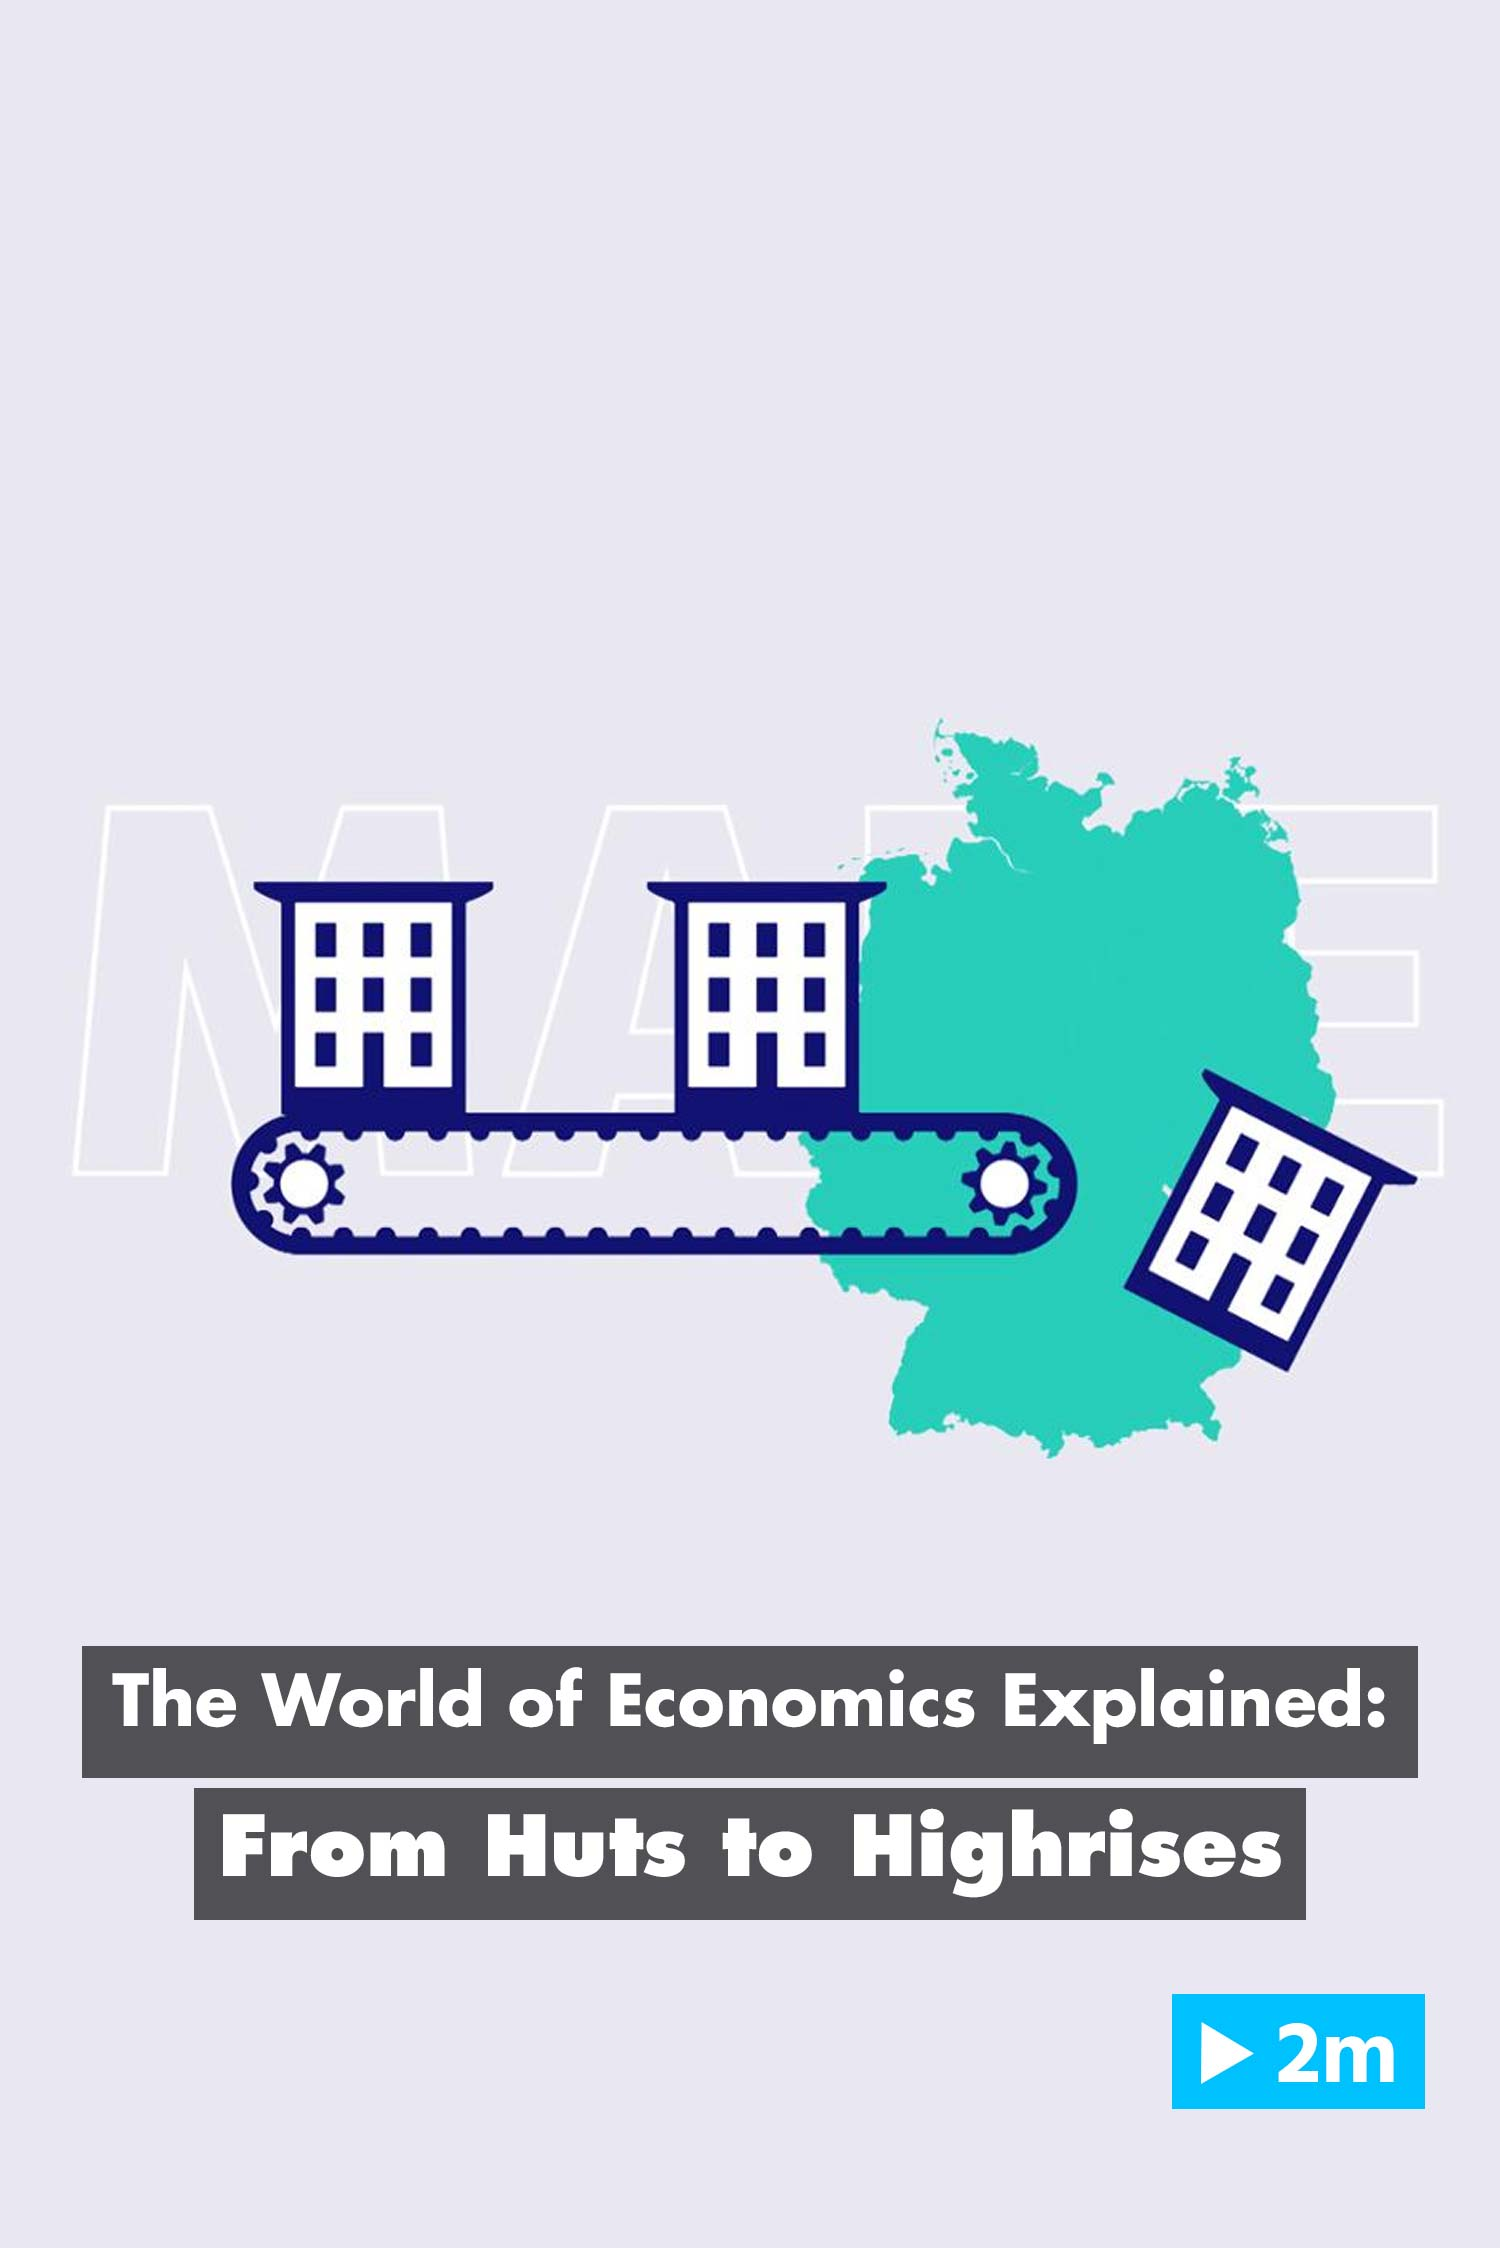 The World of Economics Explained: From Huts to Highrises